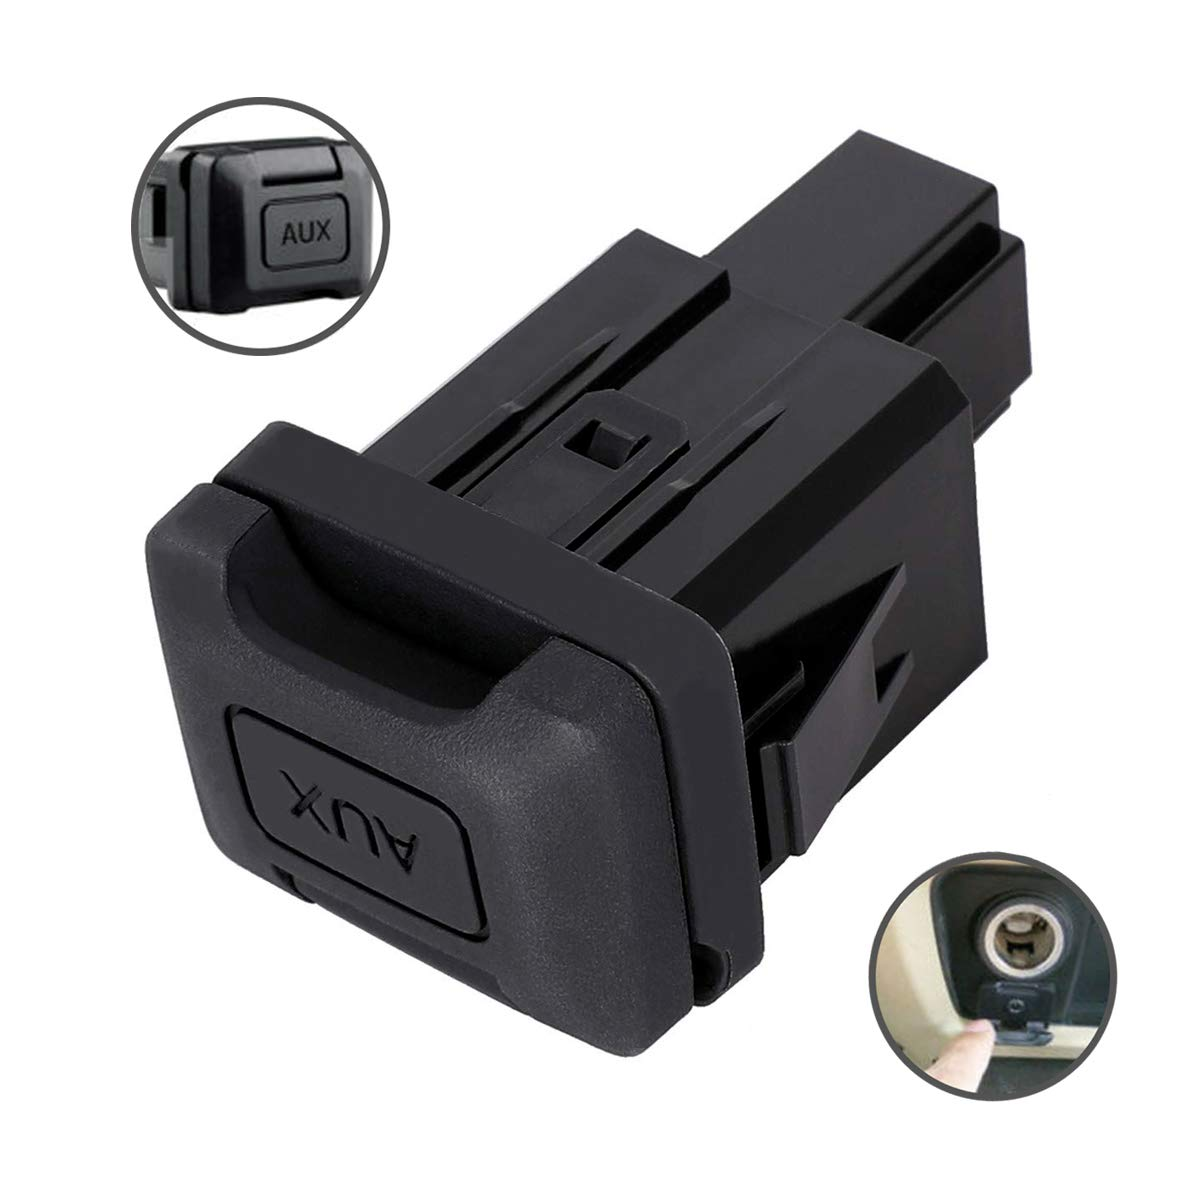 Auxiliary Input Jack Aux Port for Honda Civic 2006, 2007, 2008, 2009, 2010, 2011 Stereo Adaptor Replaces Part 39112-SNA-A01 39112SNAA01 by KanSmart